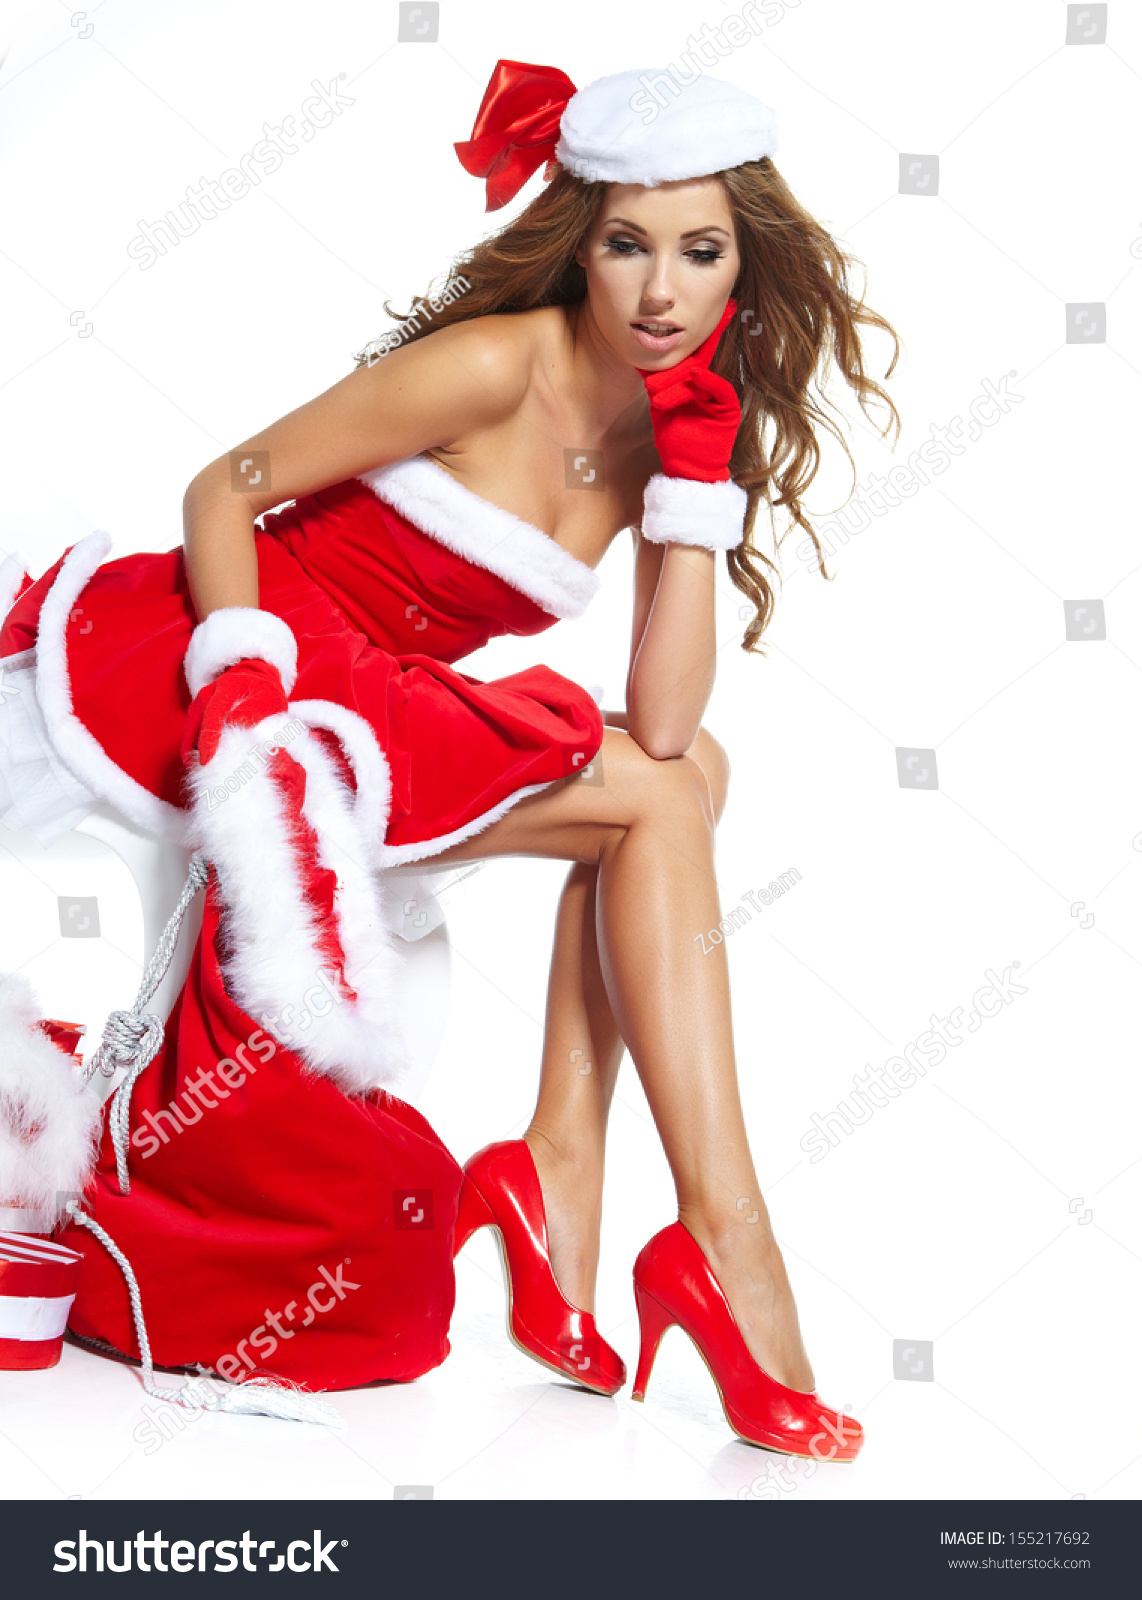 Erotic santa claus stories and photos erotica photo